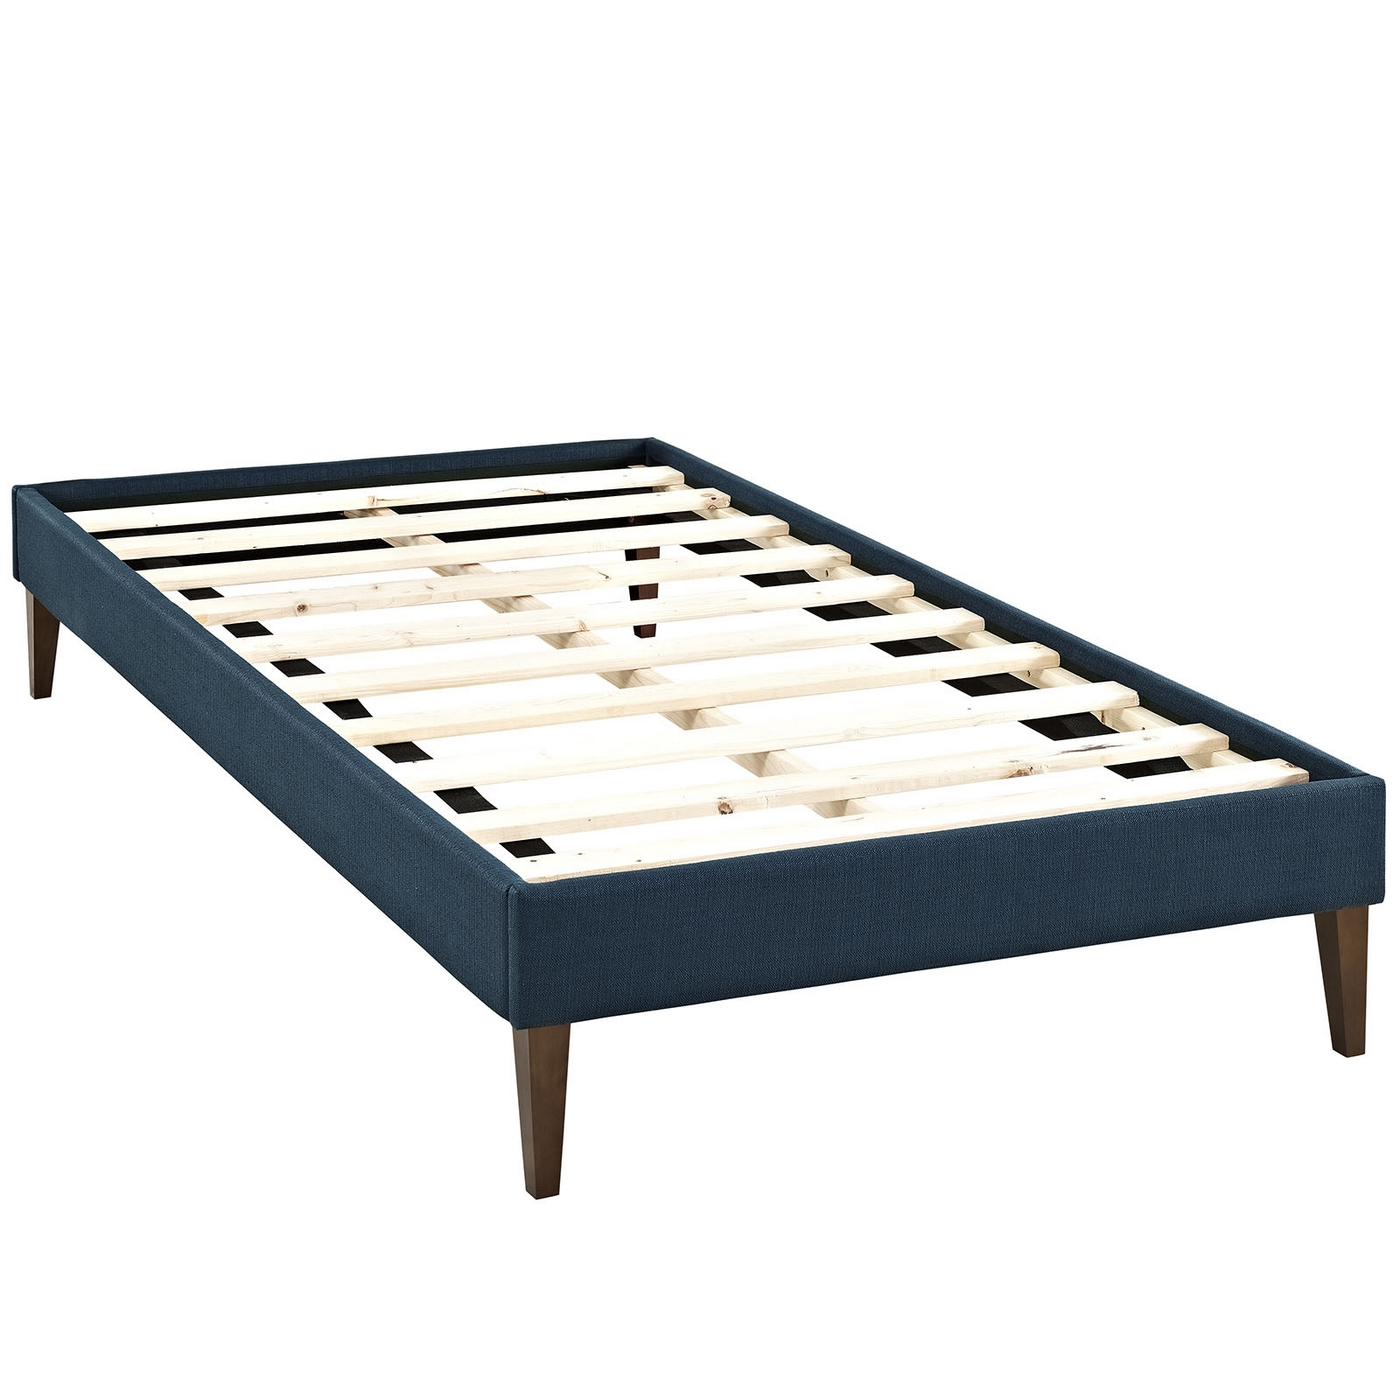 Sharon modern twin fabric platform bed frame with square Twin bed frames